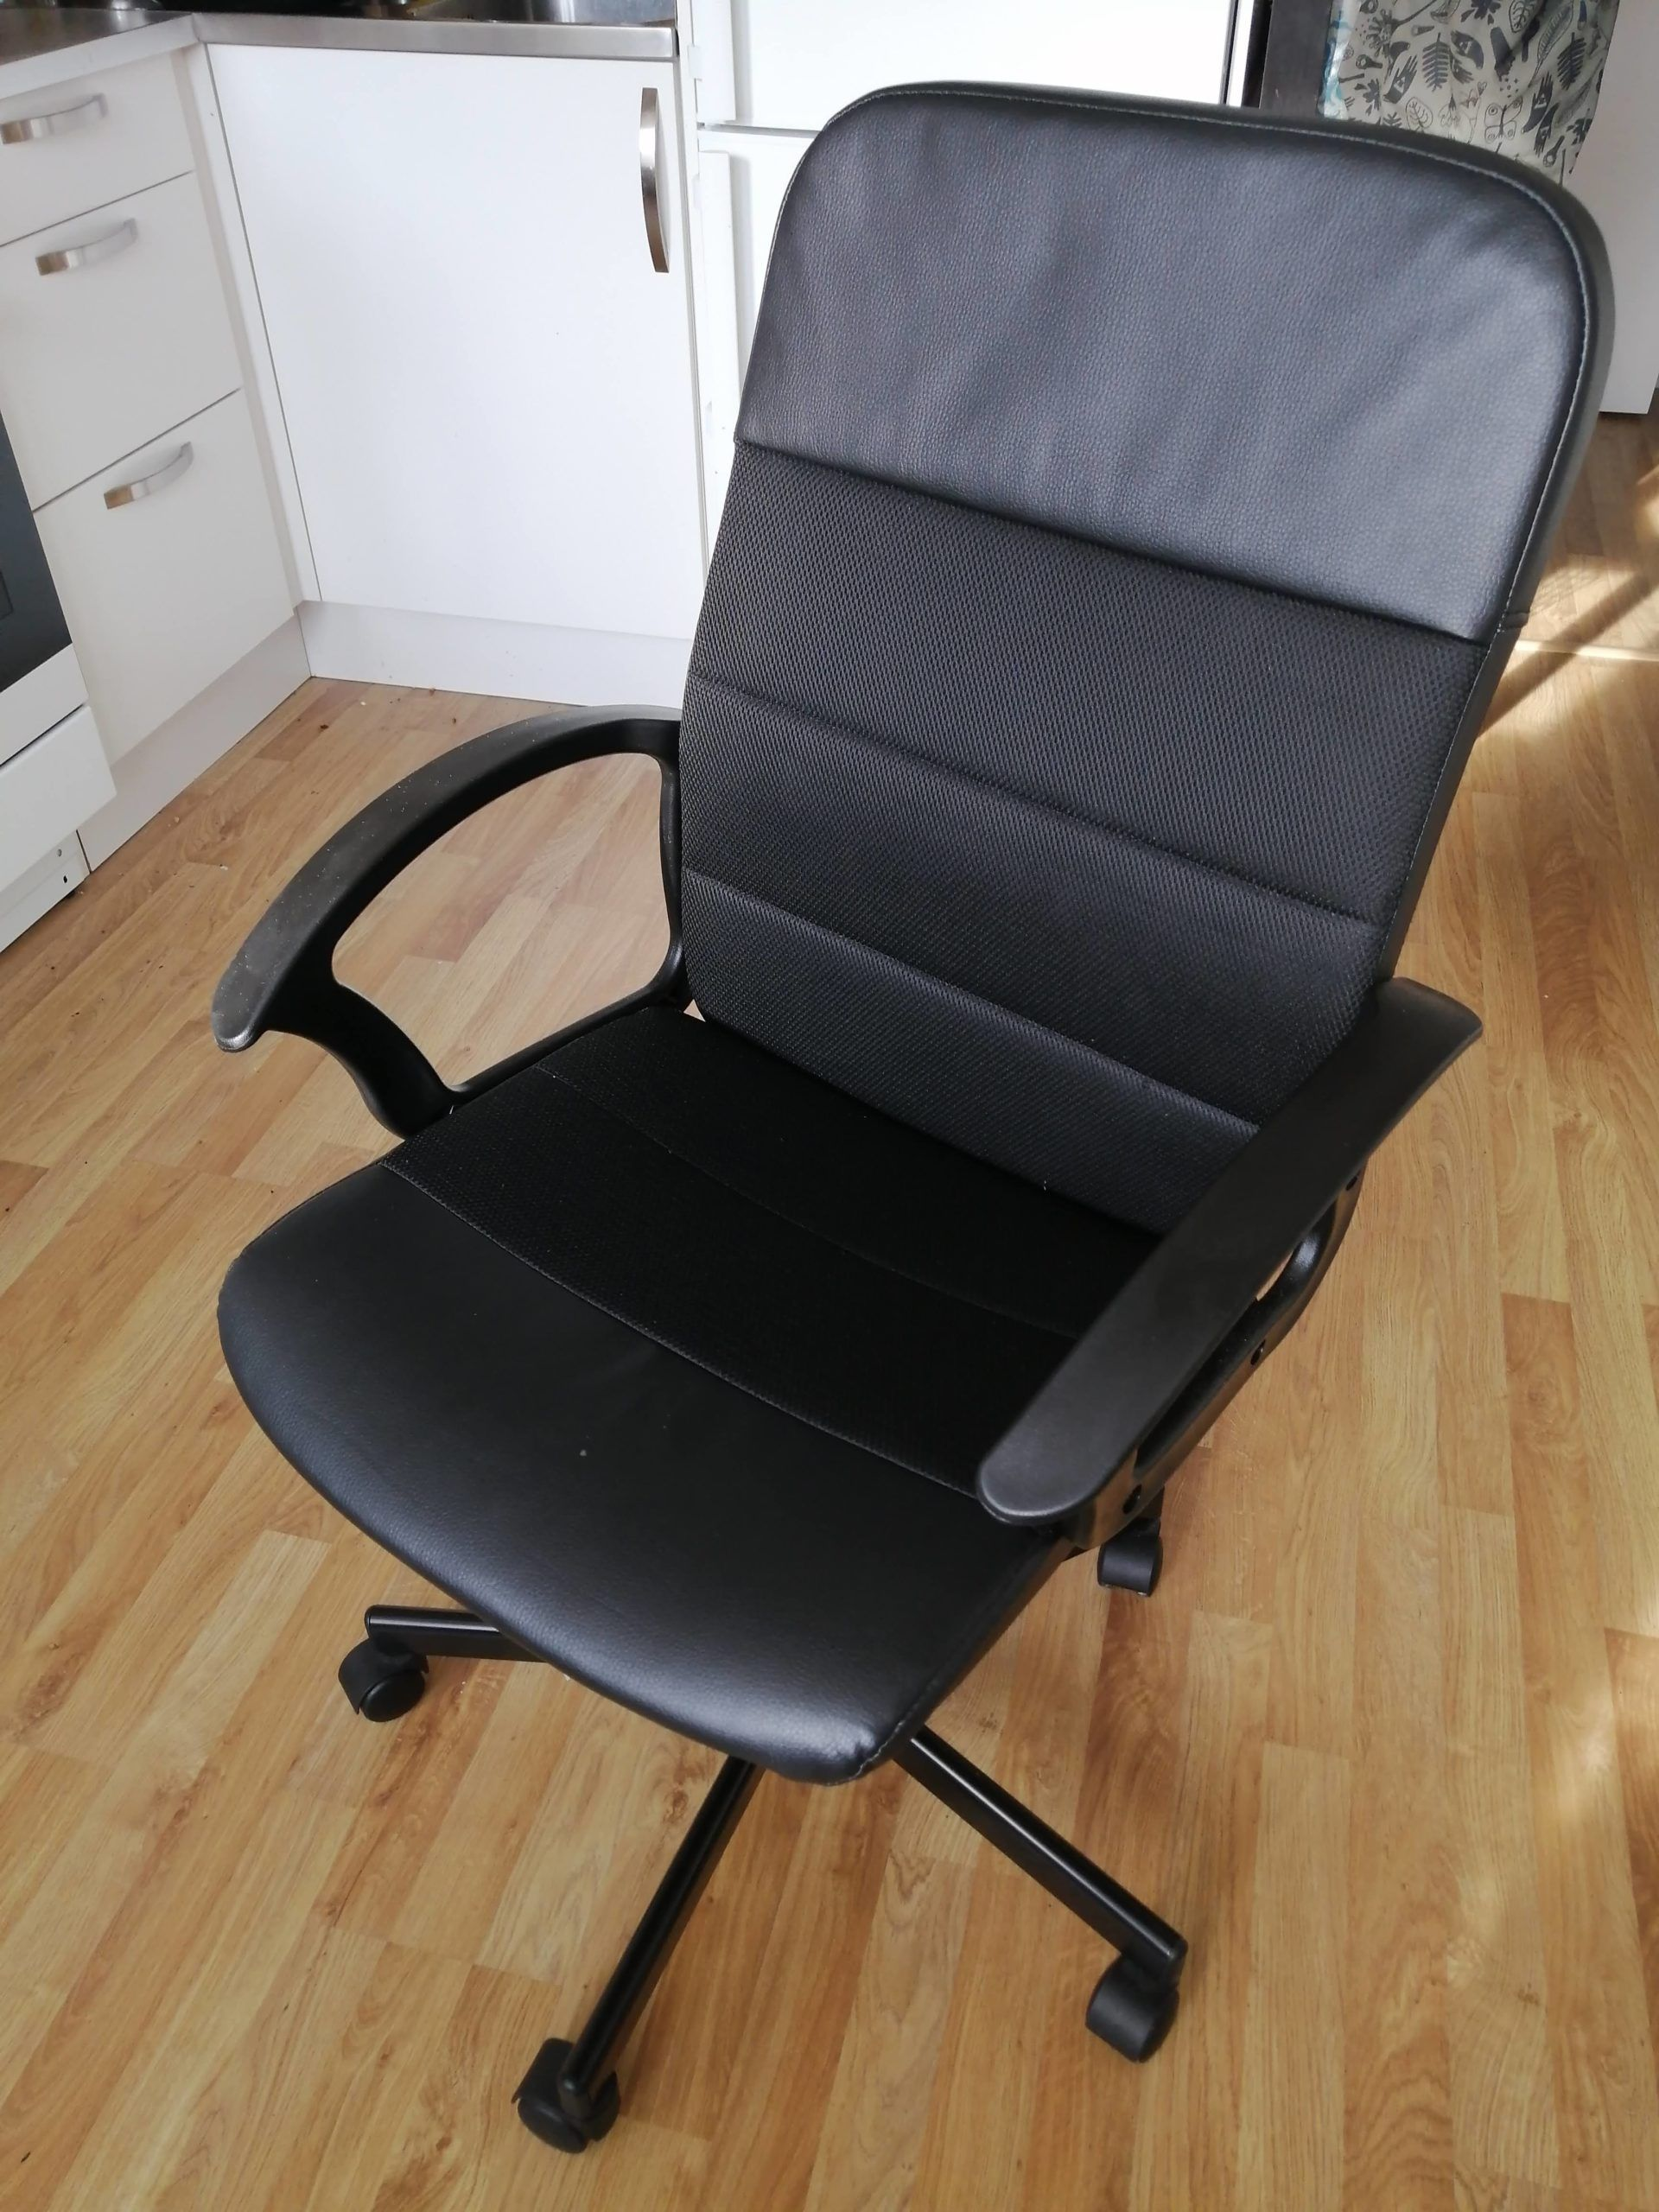 An office chair